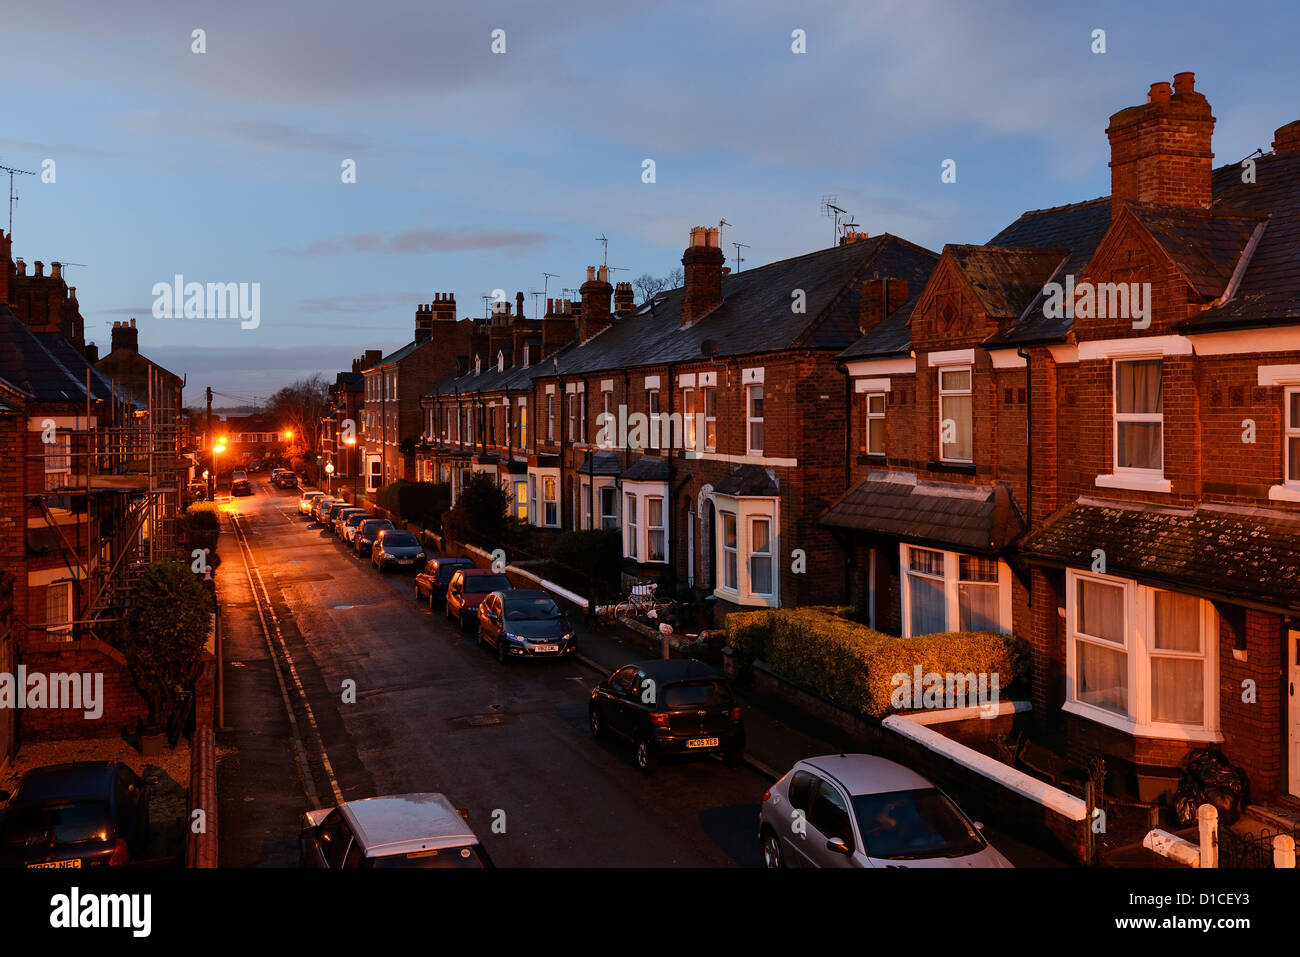 Suburban street at night - Stock Image